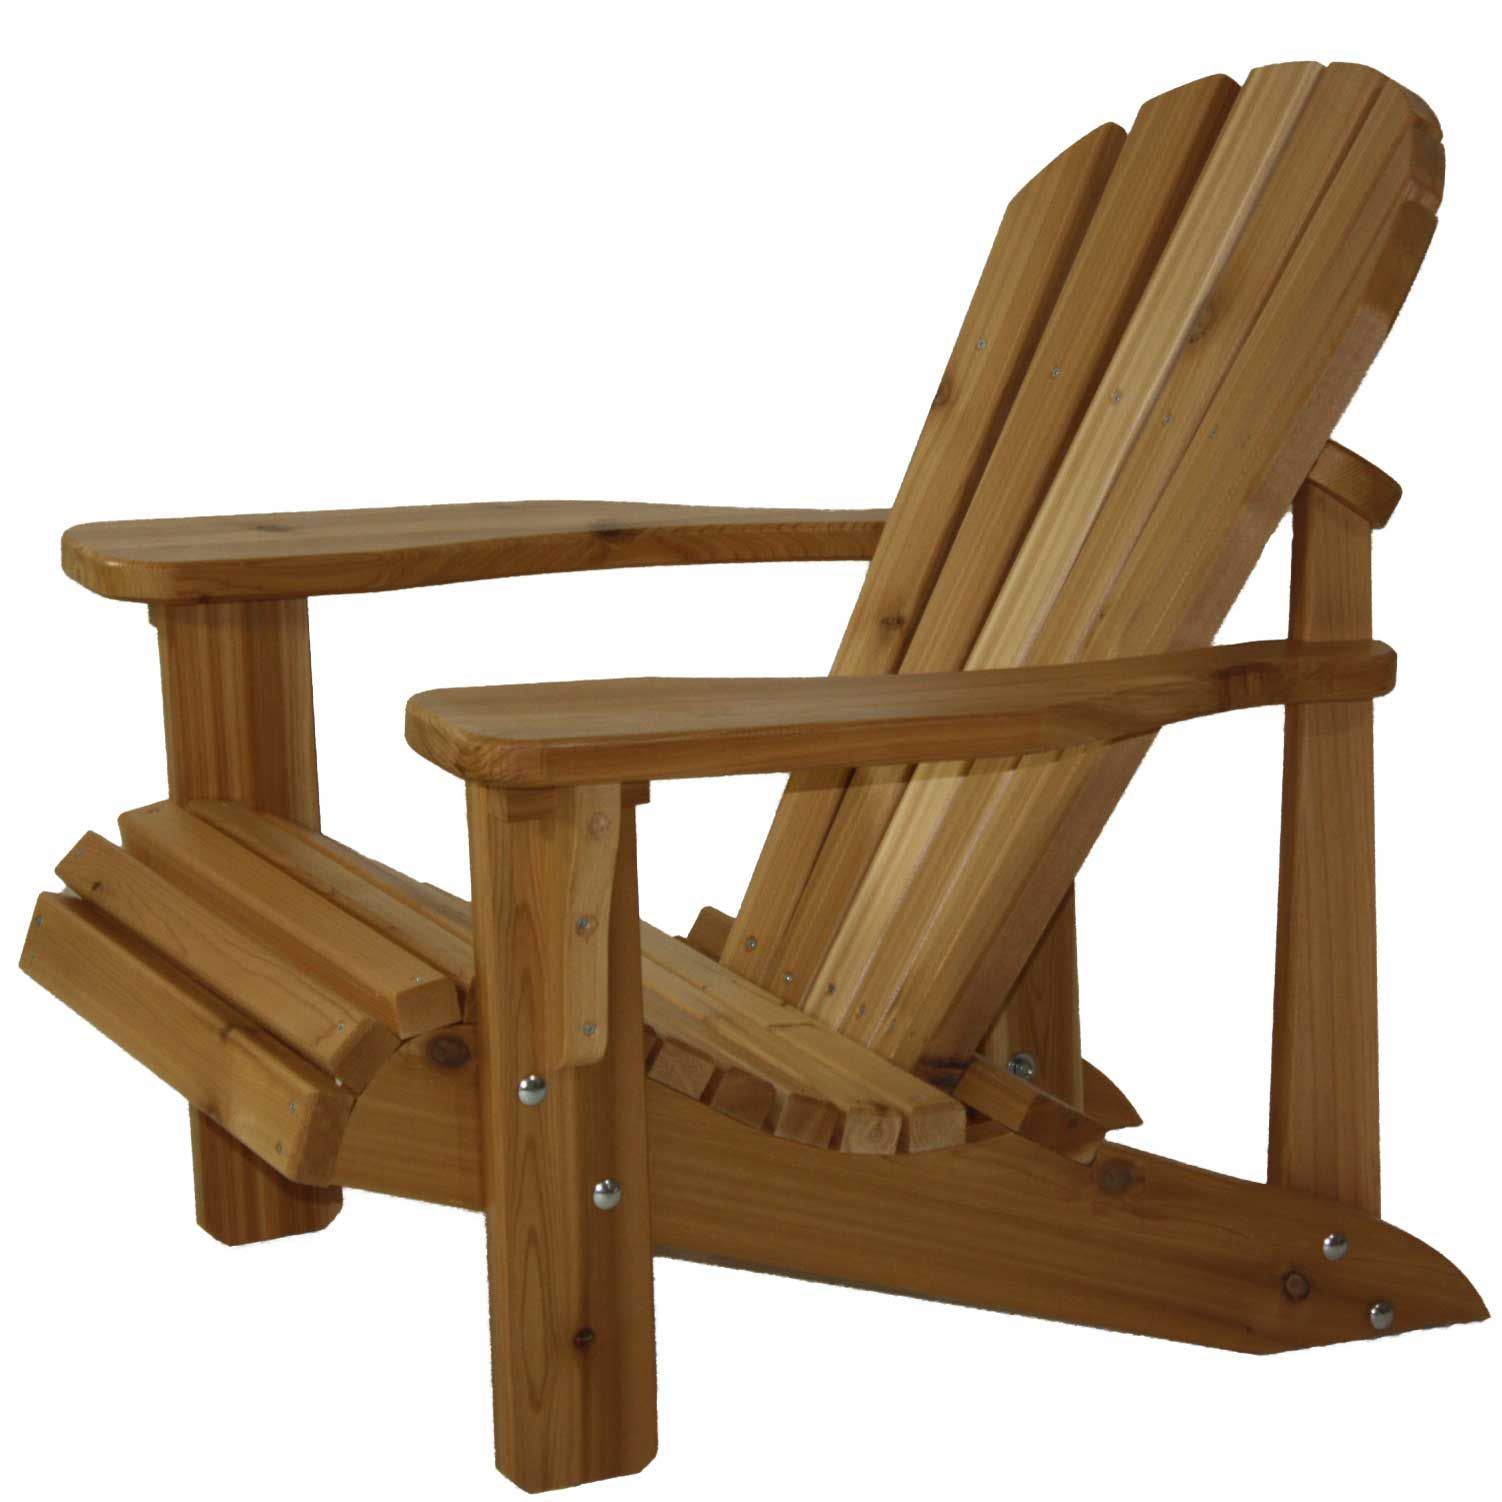 Amish Handcrafted Solid Wood Adirondack Chairs